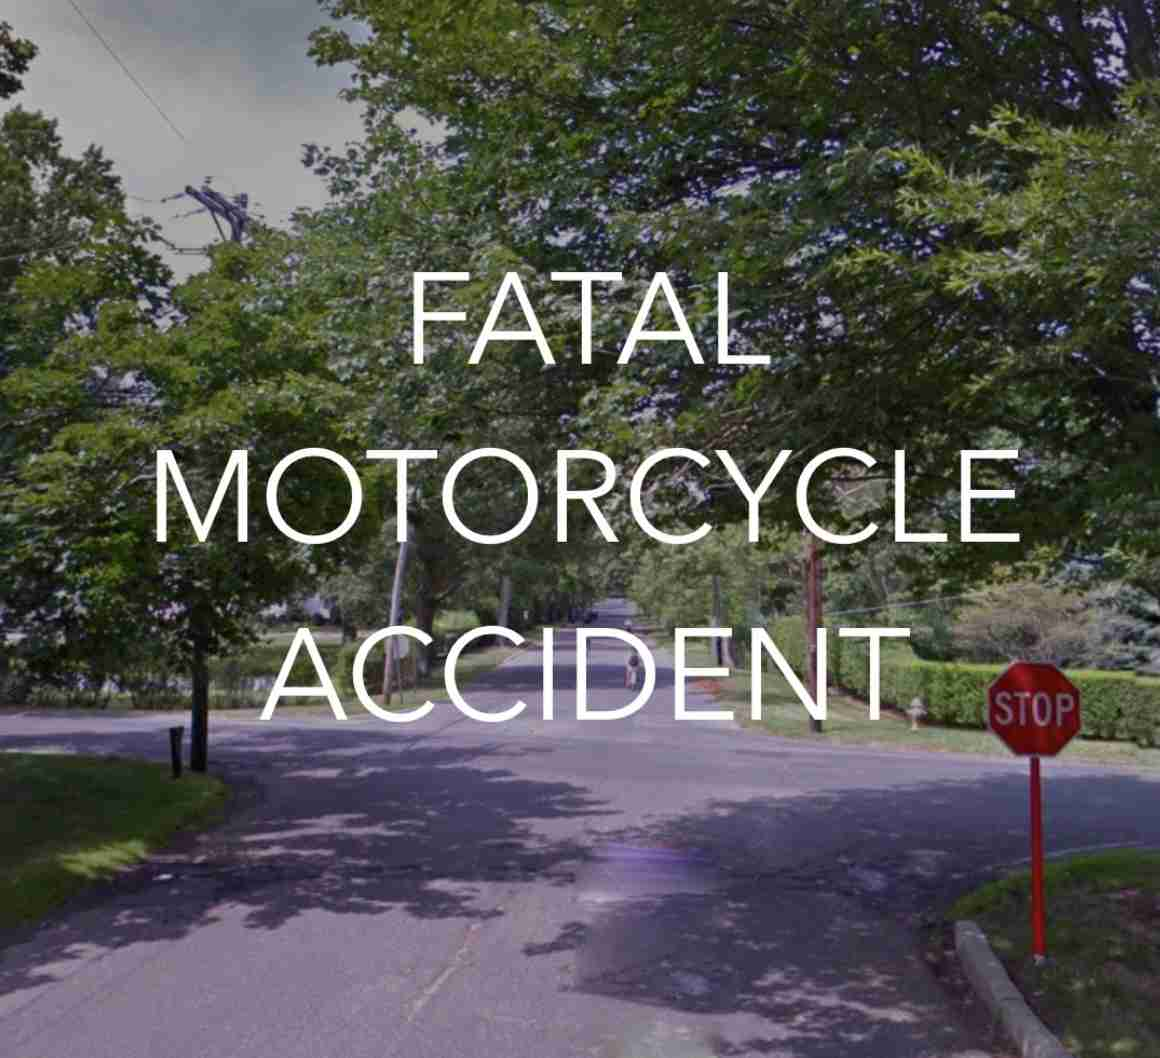 RUMSON ATLANTIC HIGHLANDS FATAL MOTORCYCLE ACCIDENT MAY